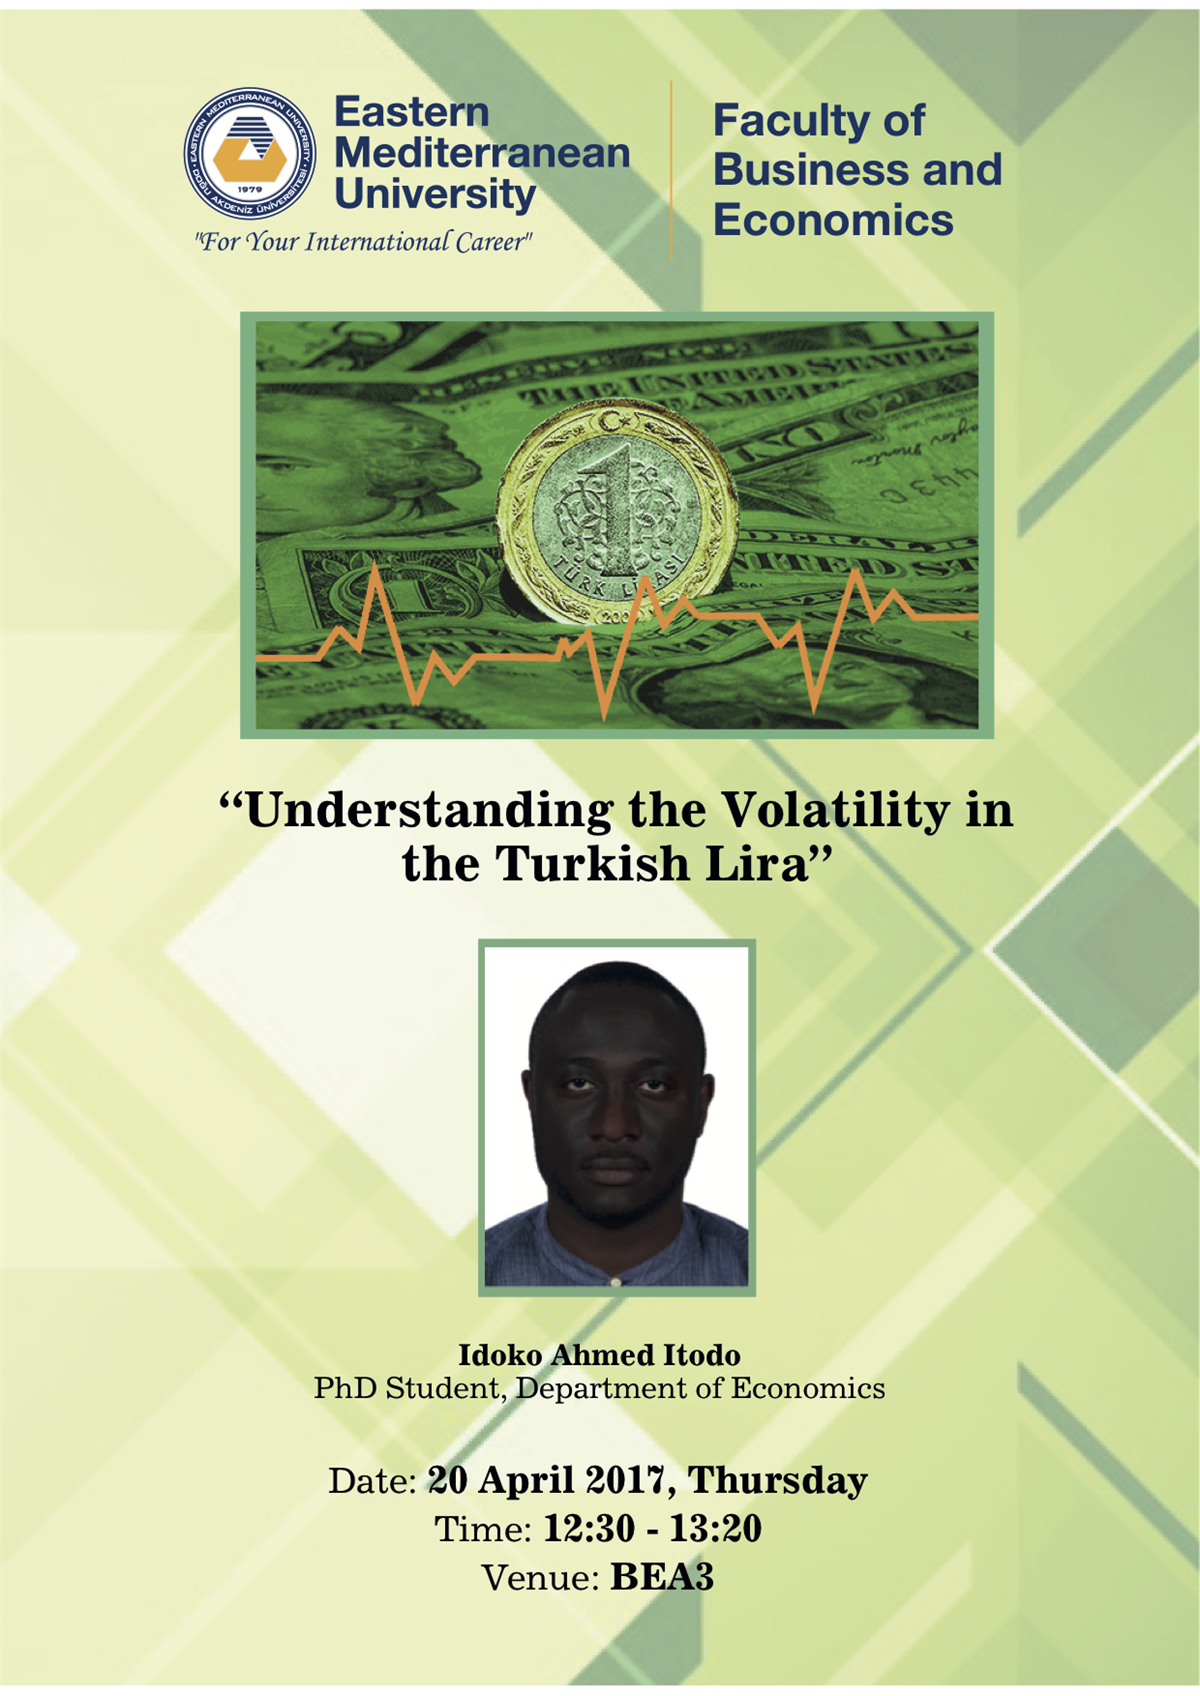 """Seminar Series: Understanding the Volatility in the Turkish Lira"" By Idoko Ahmed Itodo"